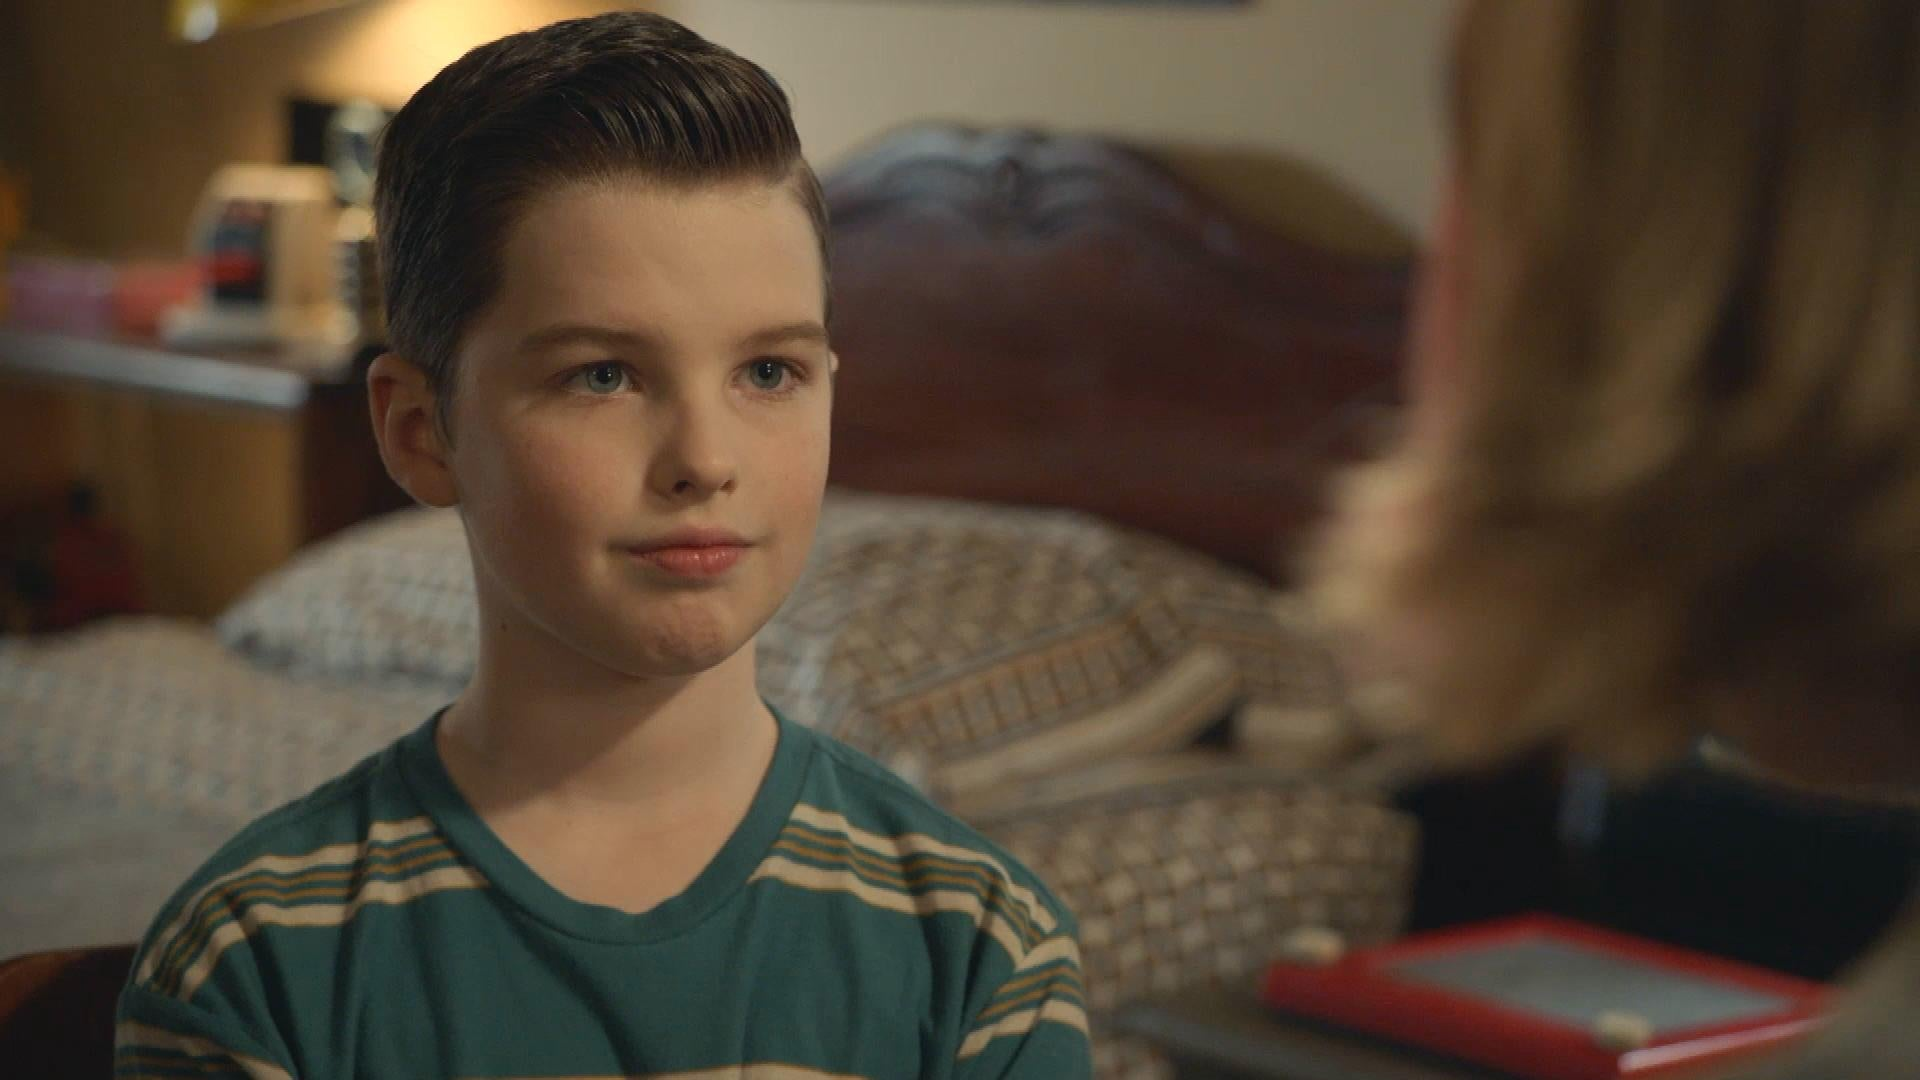 'Young Sheldon': Sheldon Offers His First Hot Beverage Sweet Scene (Exclusive)